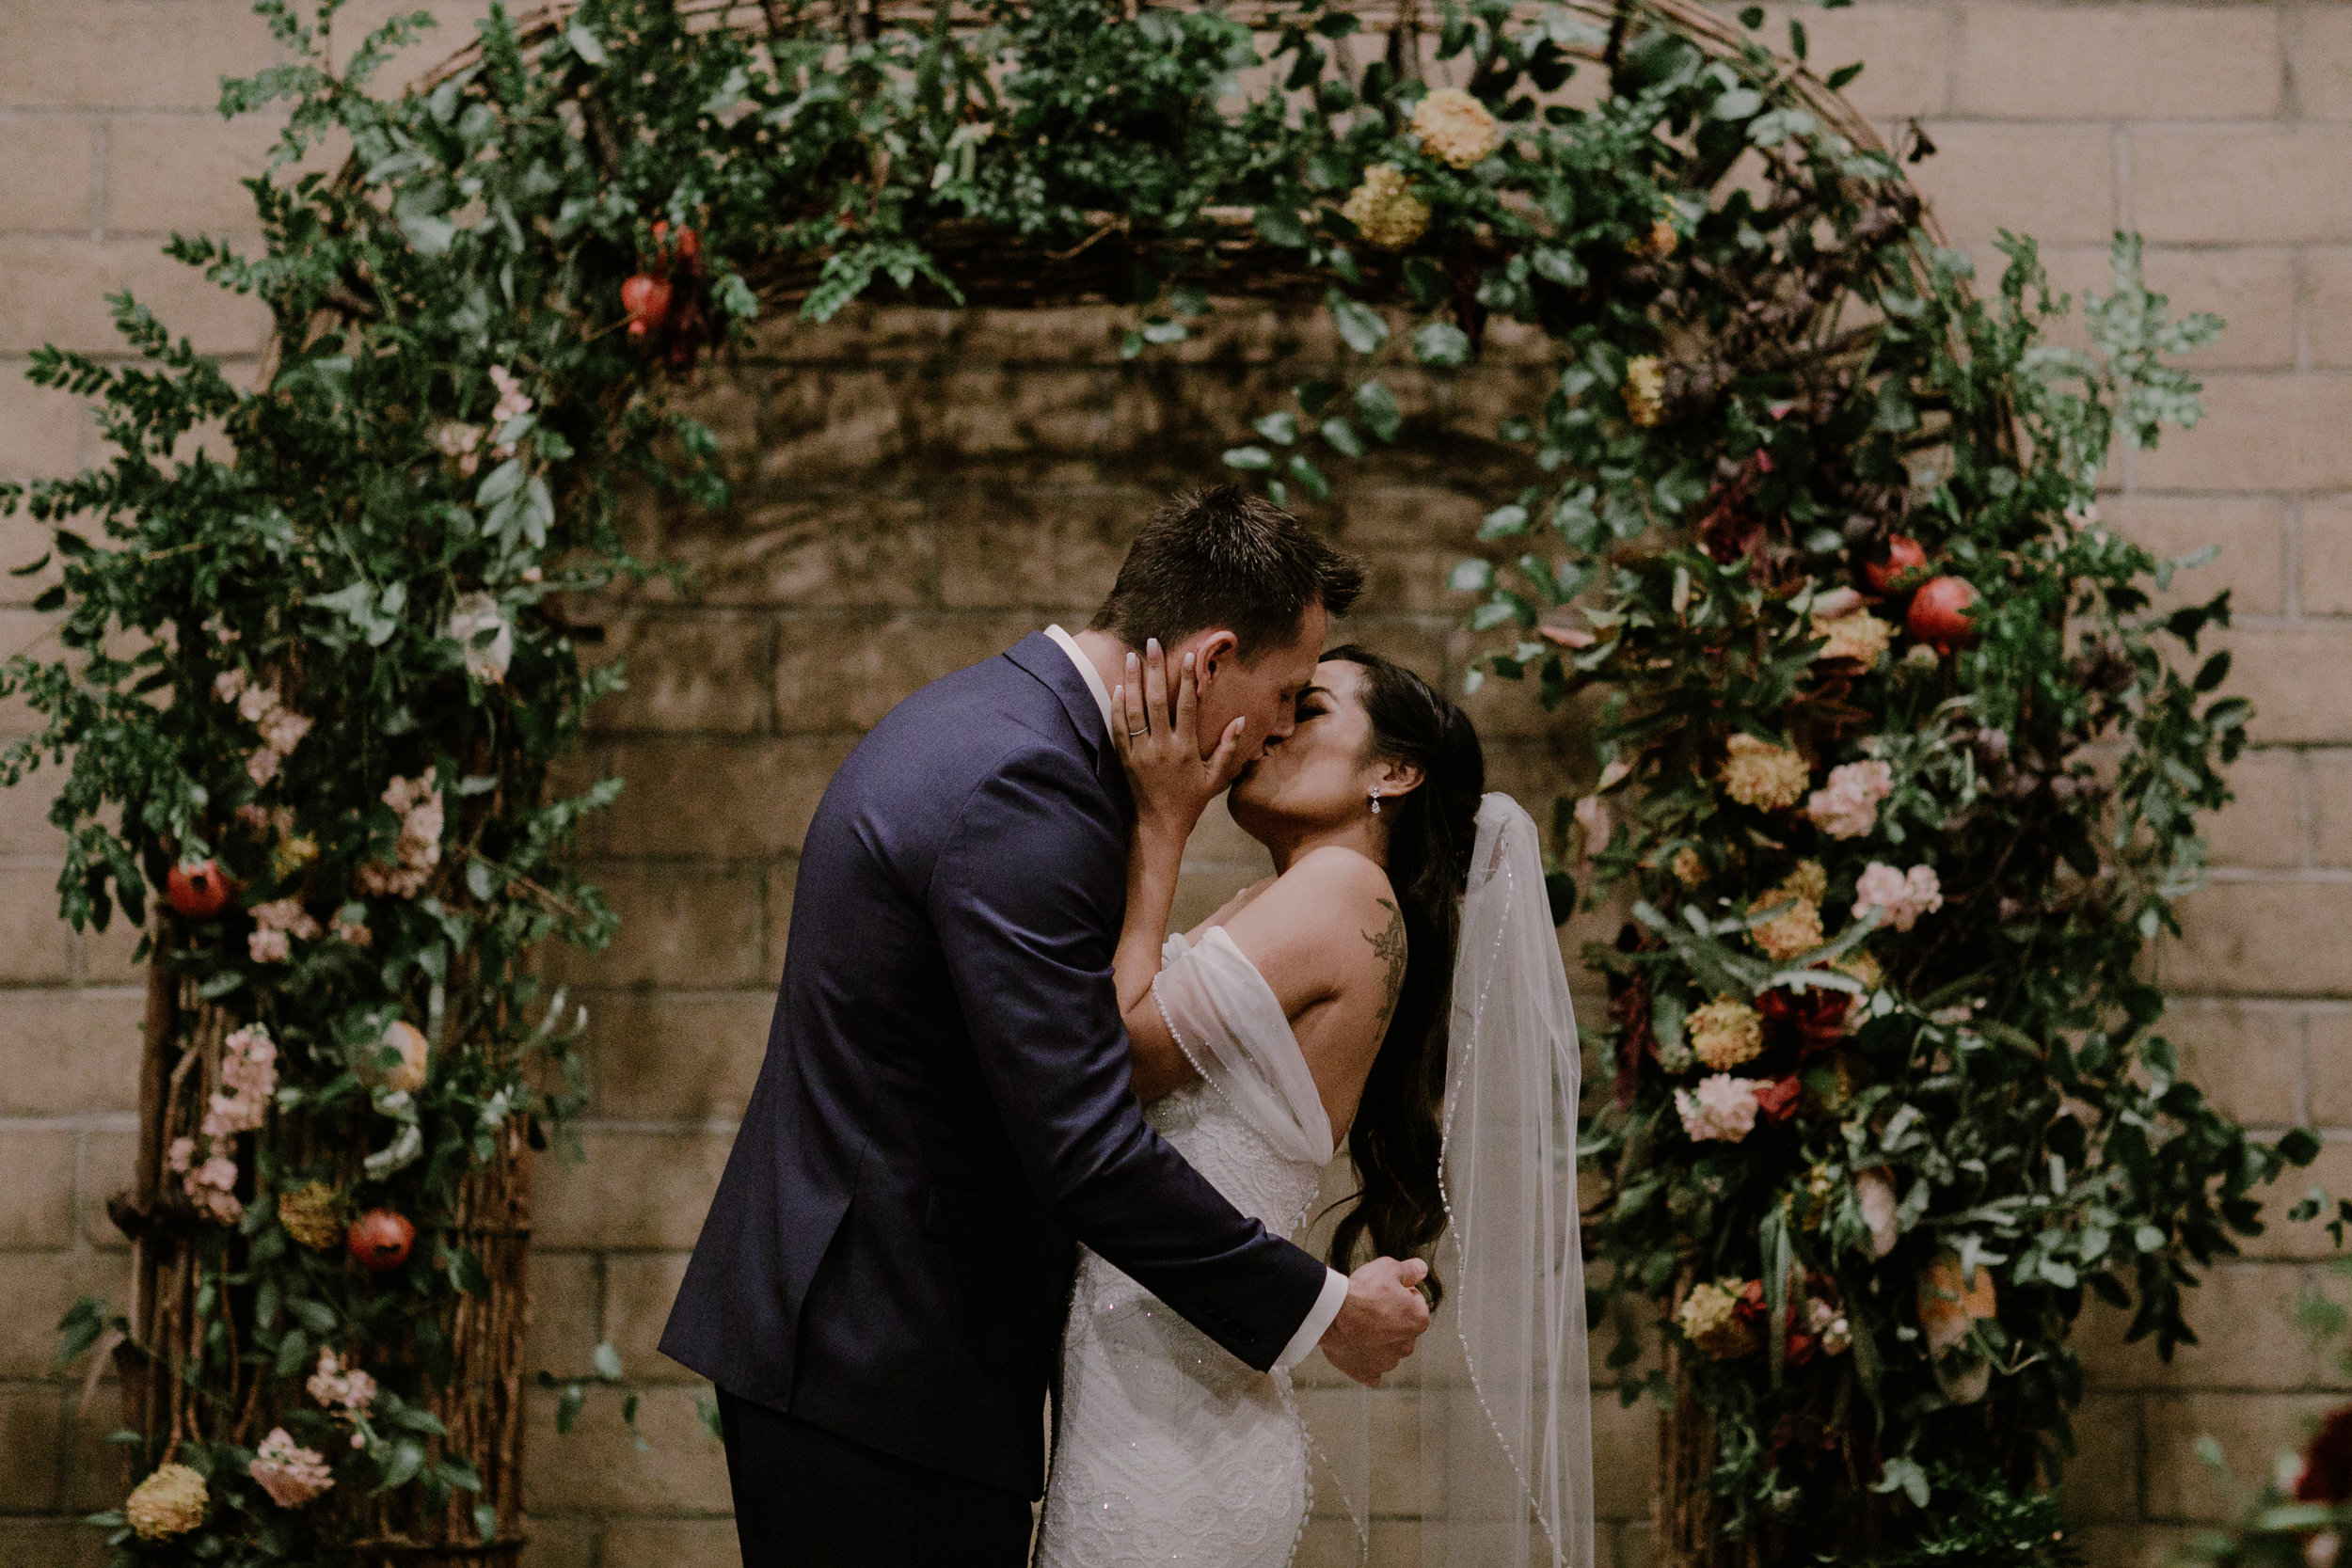 Through all the ups and downs of planning, keep imagining the most important part of the day: marrying your best friend! It will get you through.